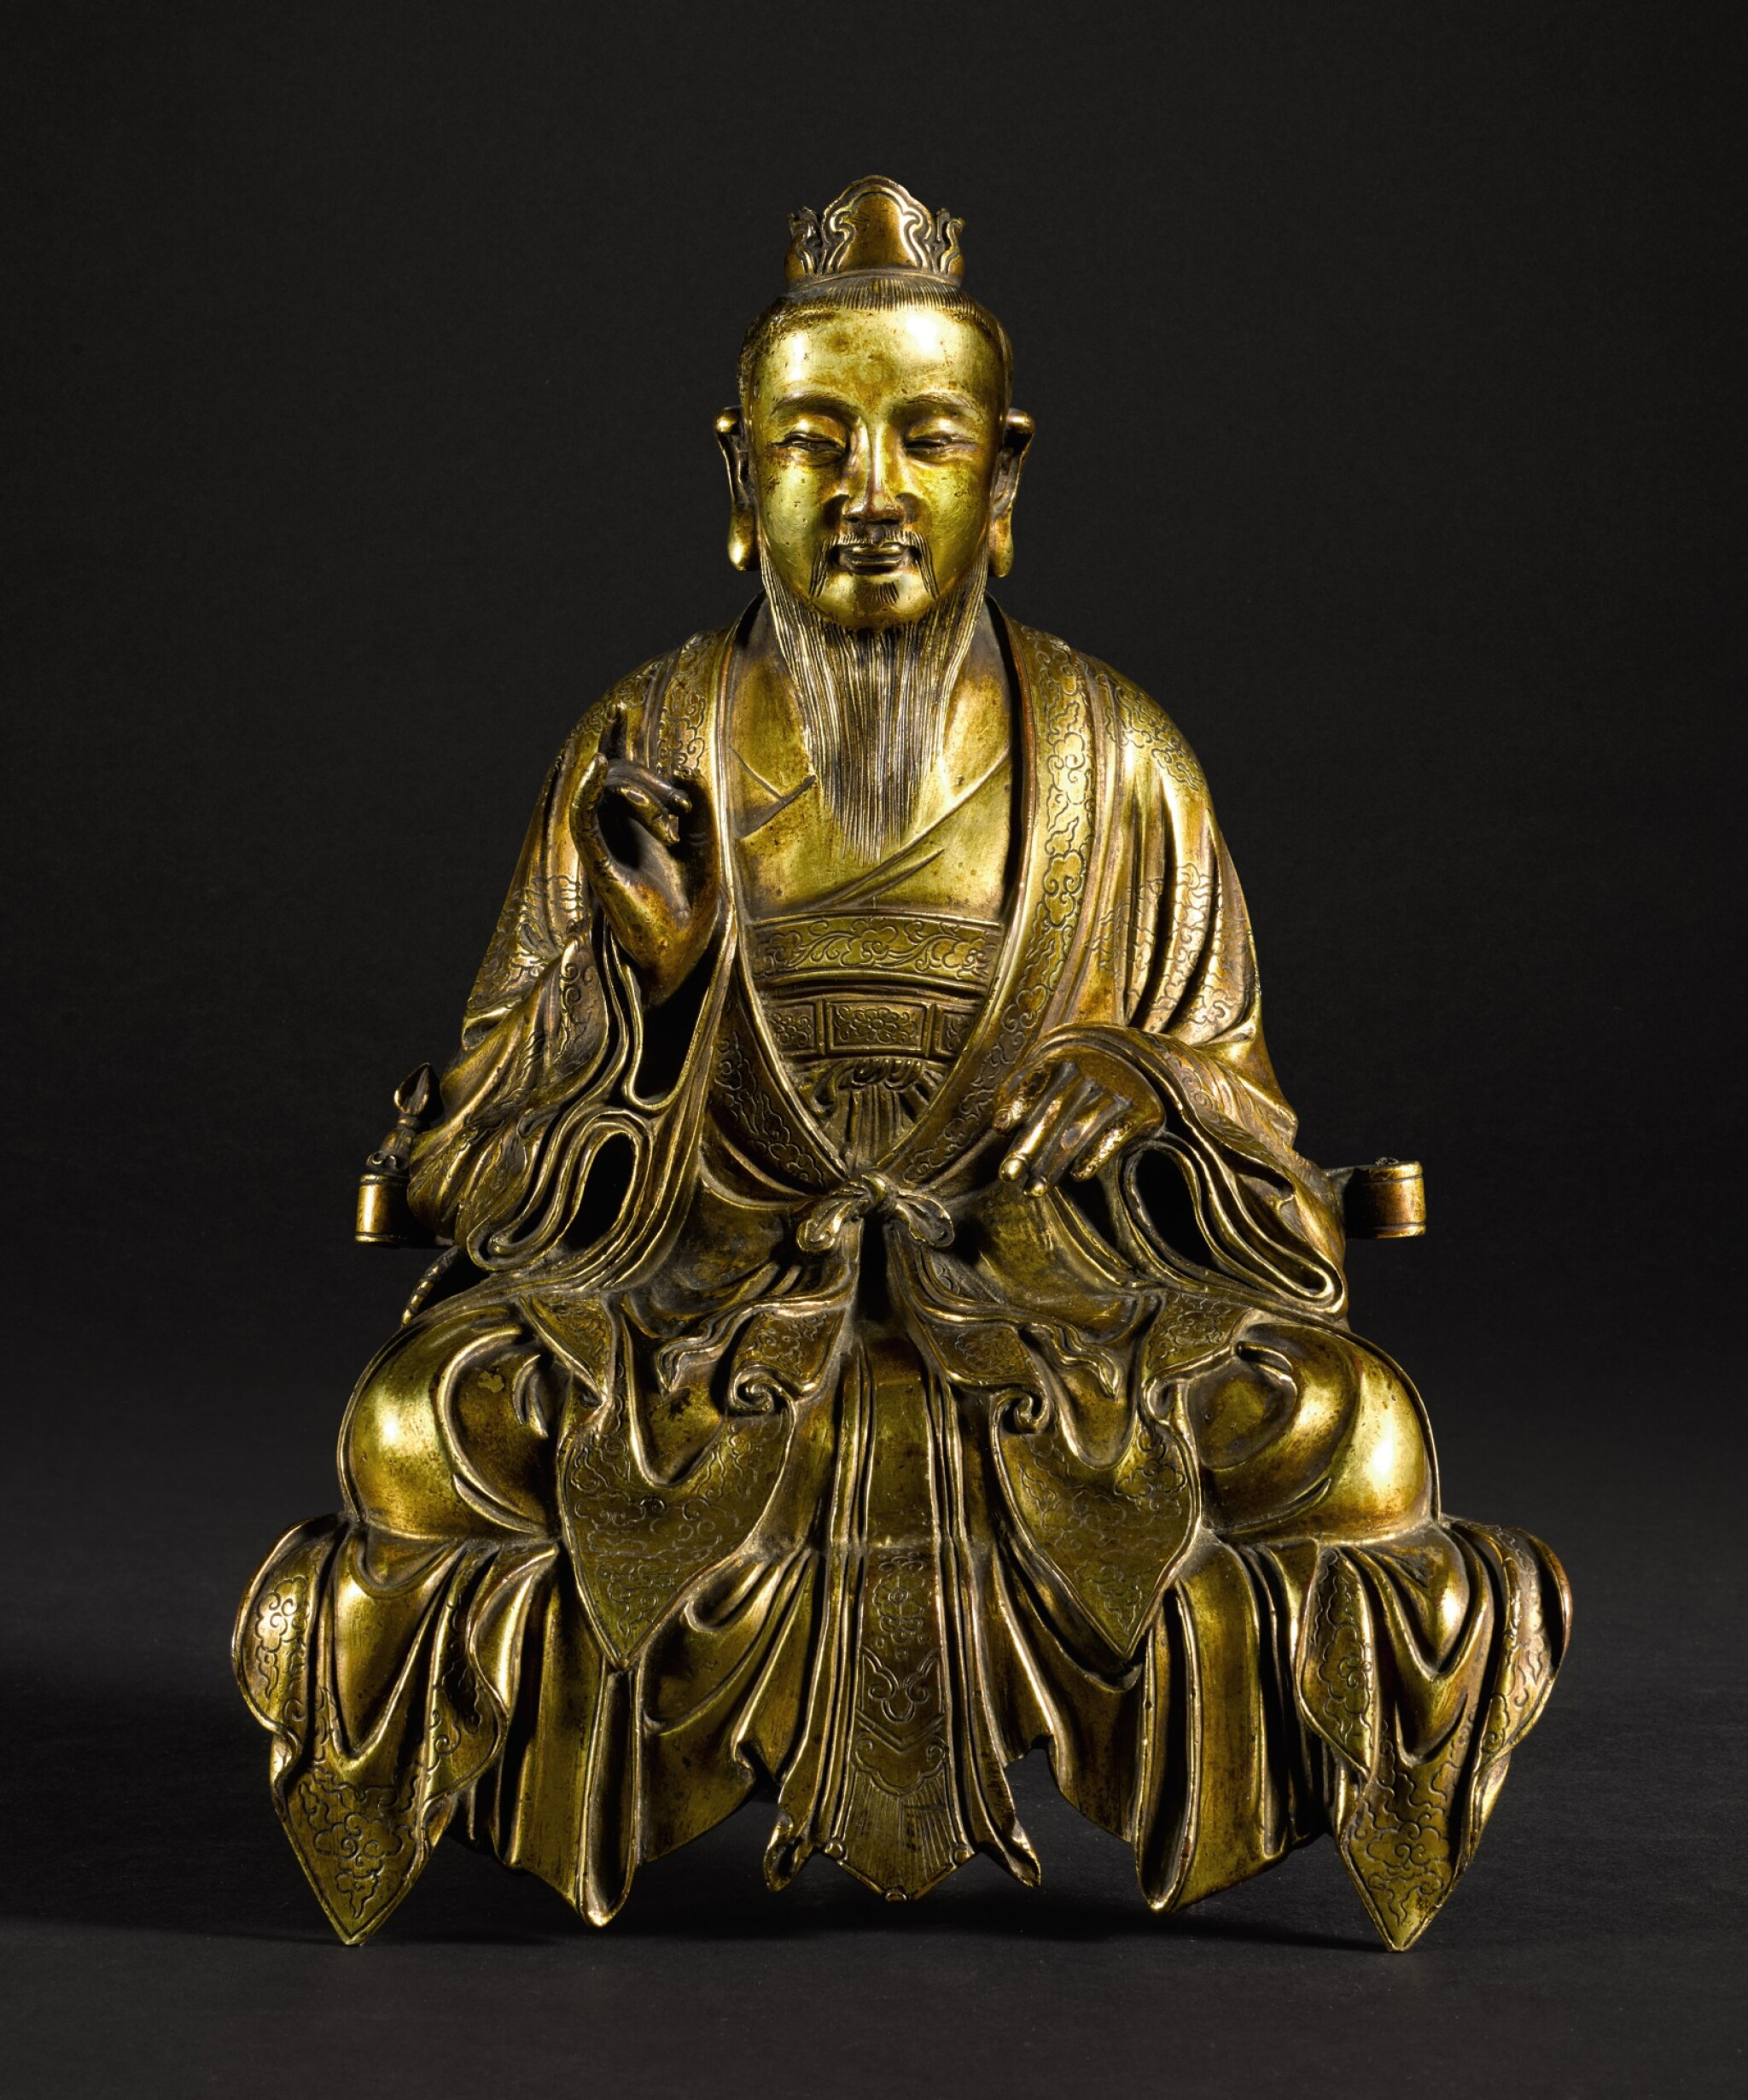 View 1 of Lot 187. A RARE GILT-BRONZE SEATED FIGURE OF A DAOIST DEITY QING DYNASTY, 18TH CENTURY | 清十八世紀 鎏金銅道教神仙坐像.